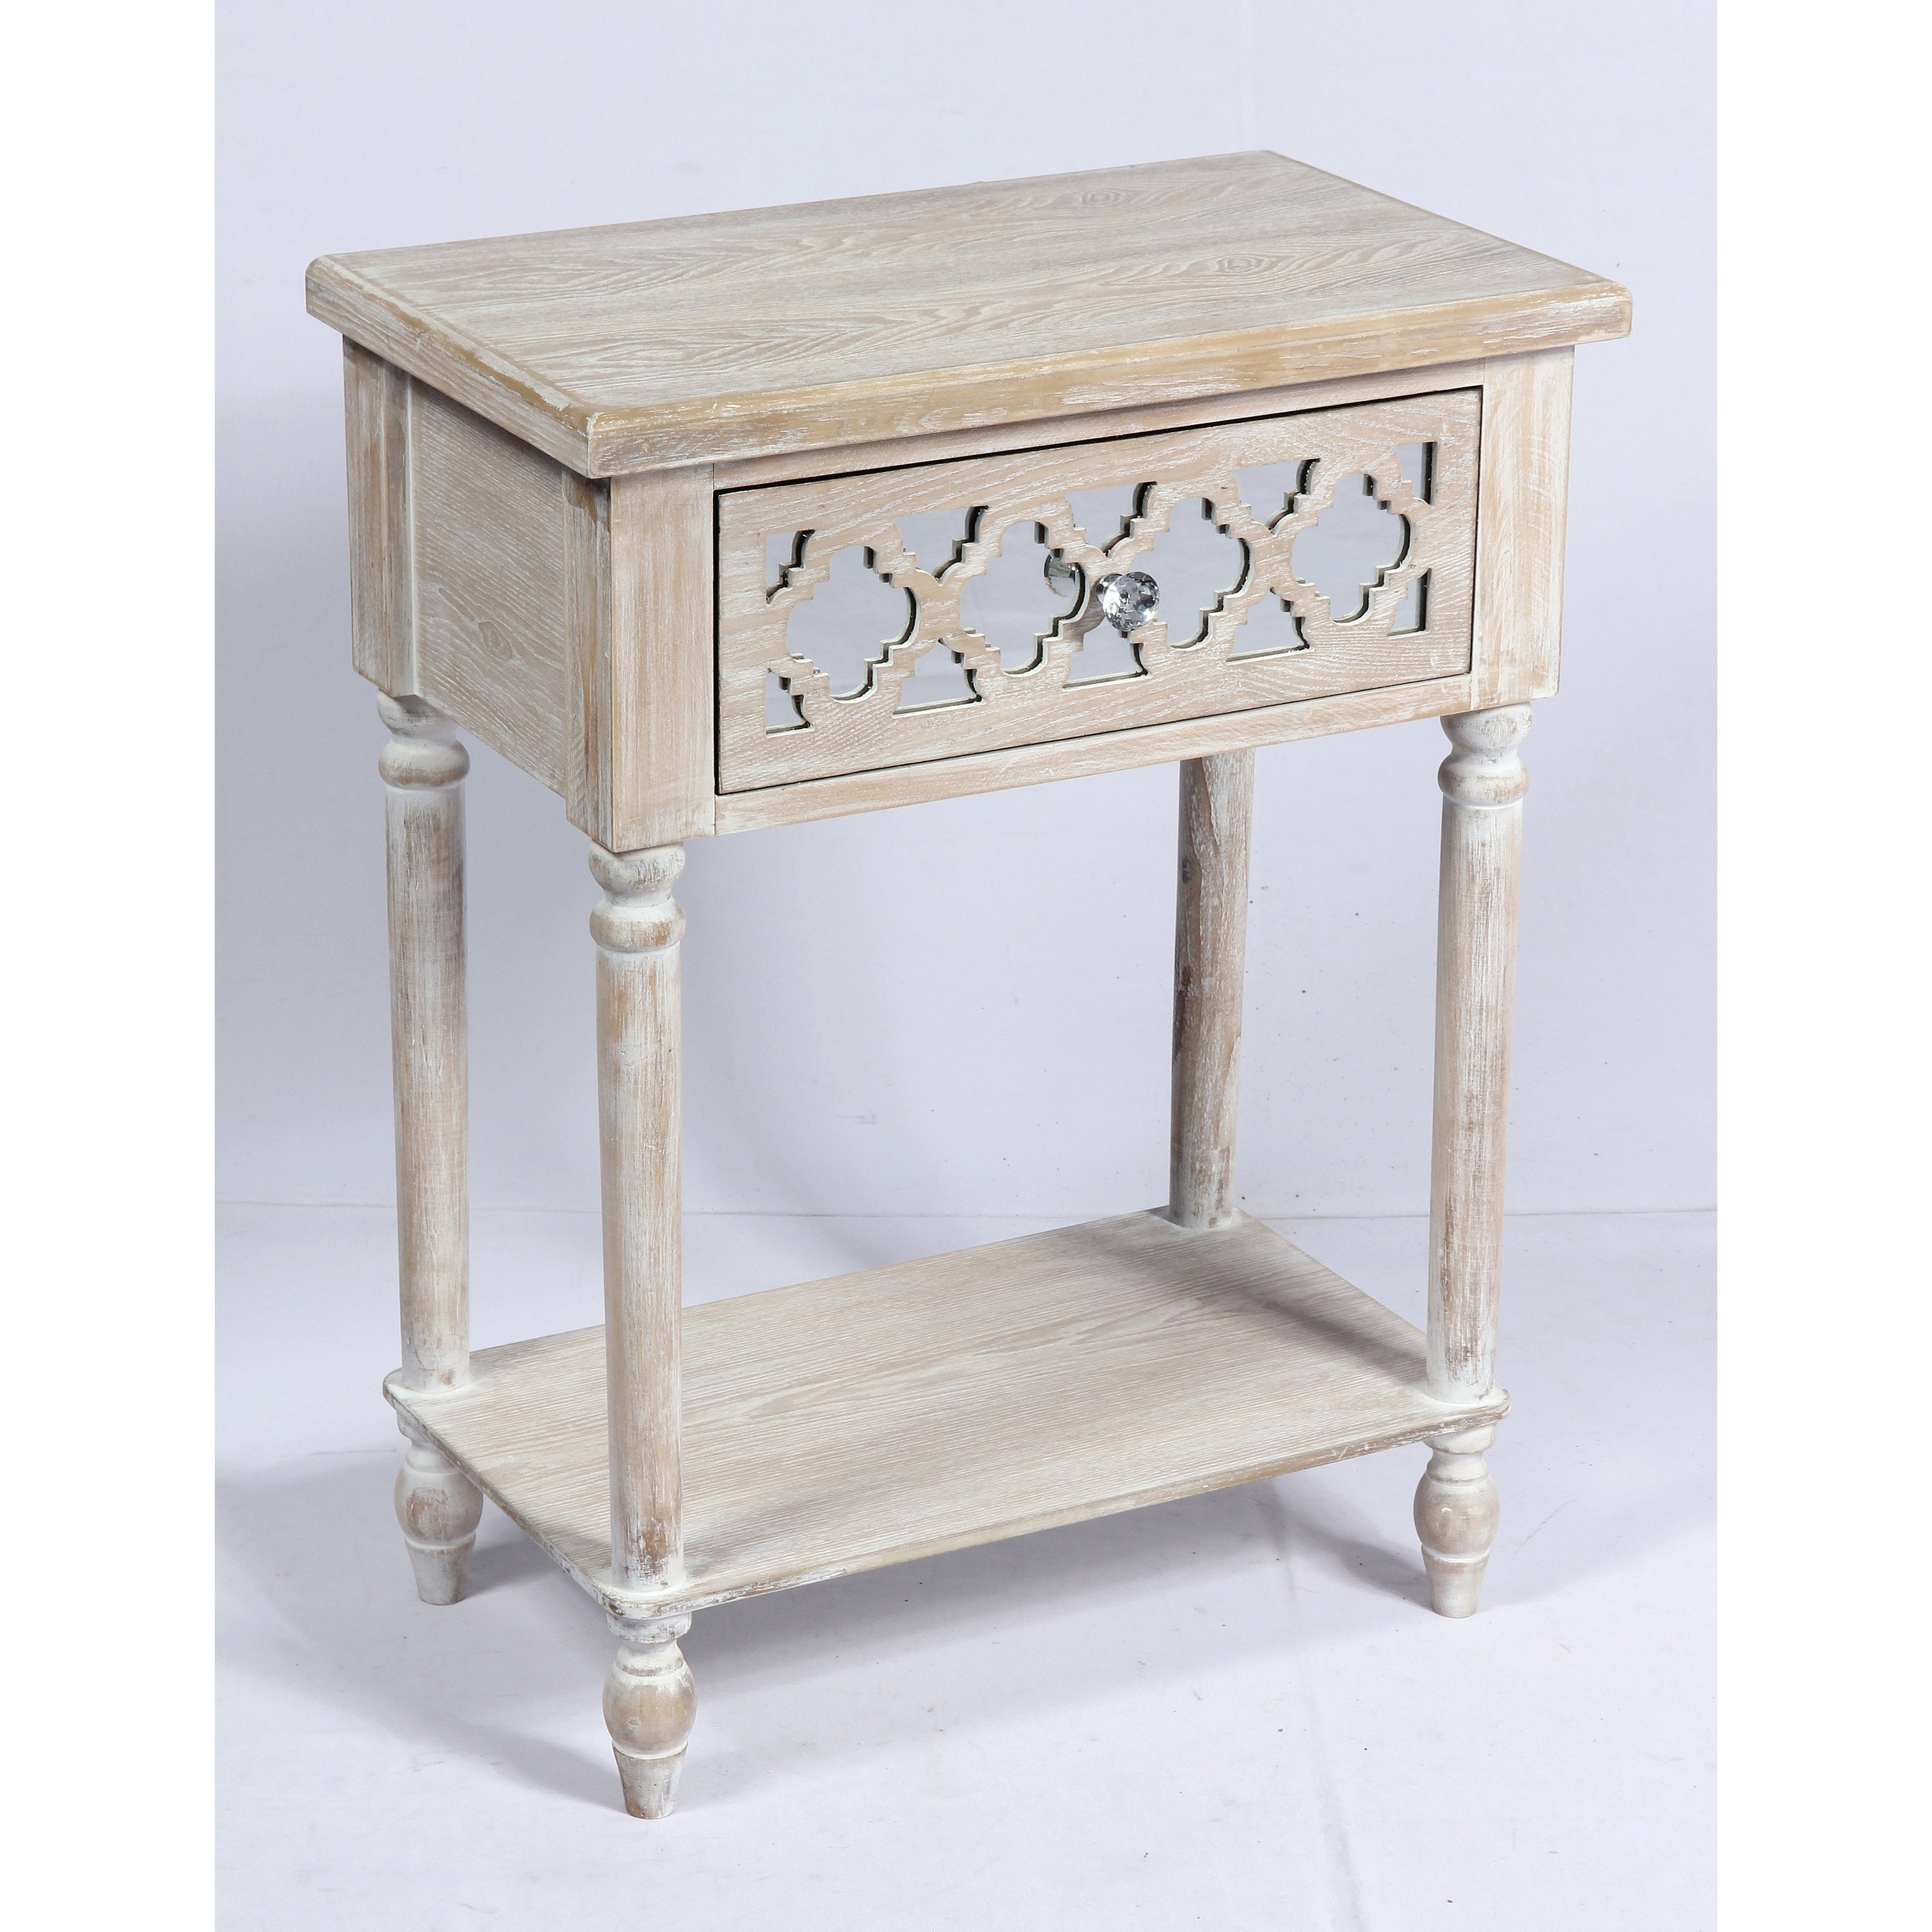 emerald home canterwood whitewash and mirror accent table with french country turned leg threshold lattice detailing hardworking storage organization free shipping vintage